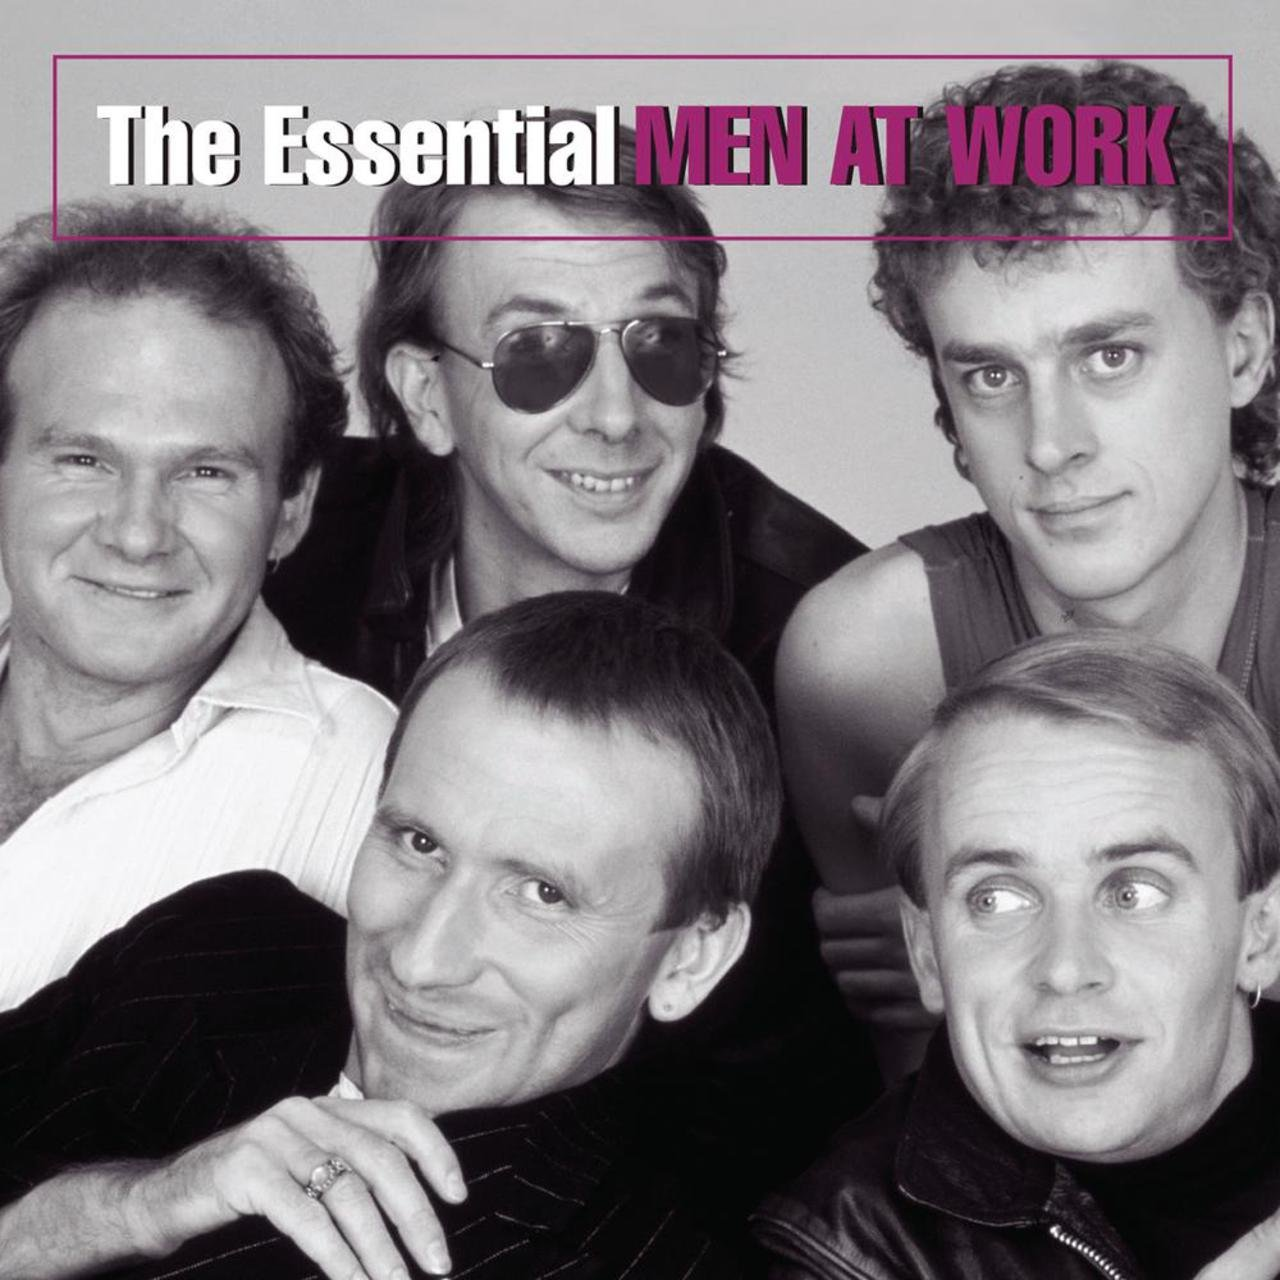 TIDAL: Listen to The Best Of Men At Work: Contraband on TIDAL